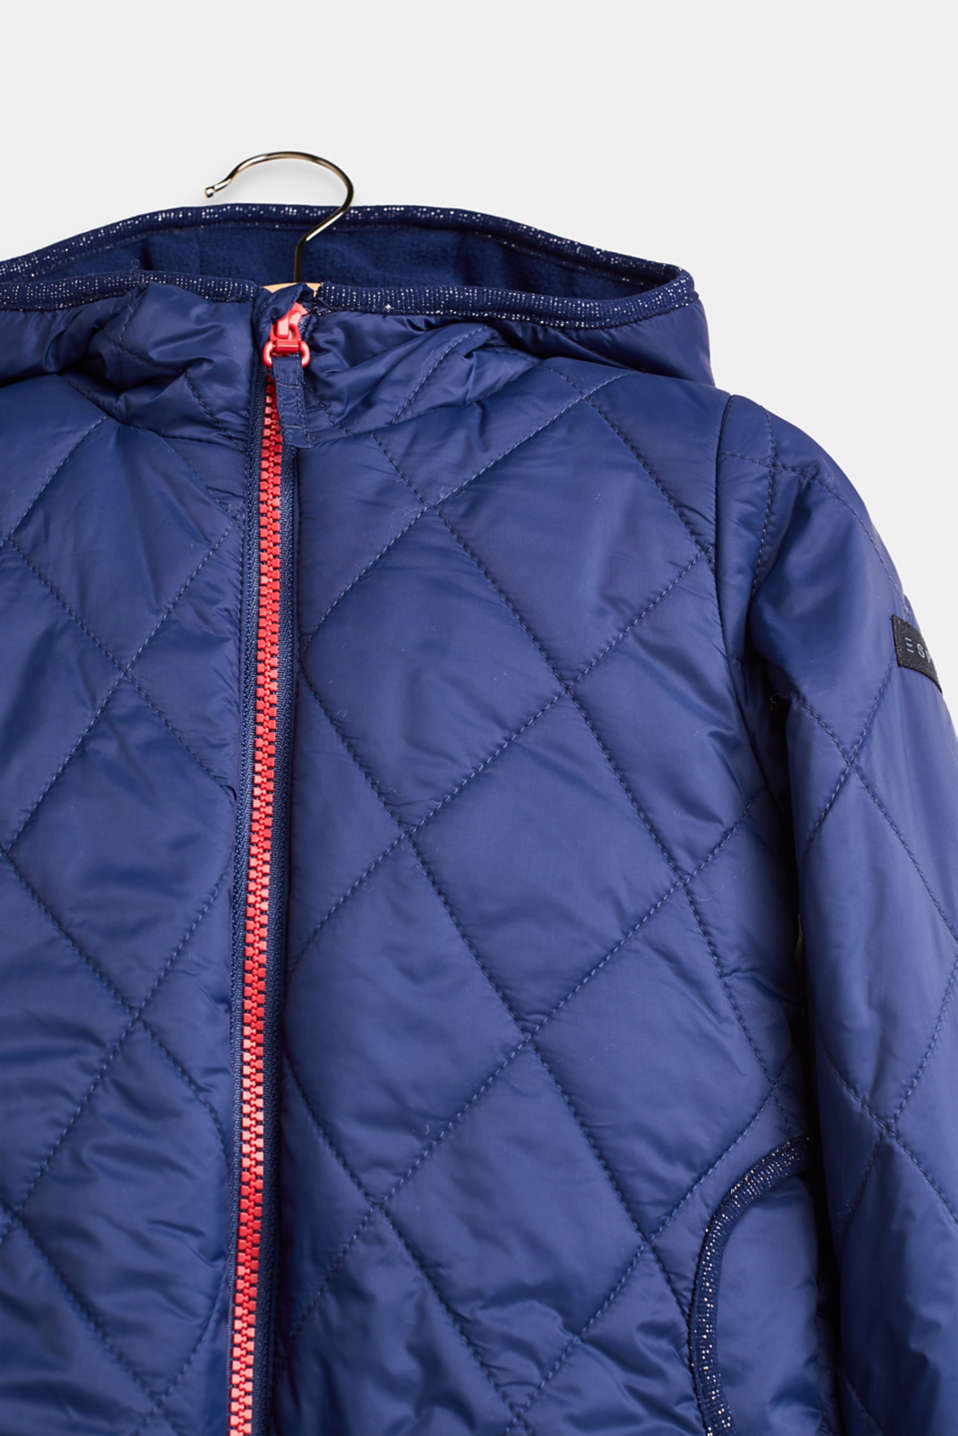 Jackets outdoor woven, LCMARINE BLUE, detail image number 2